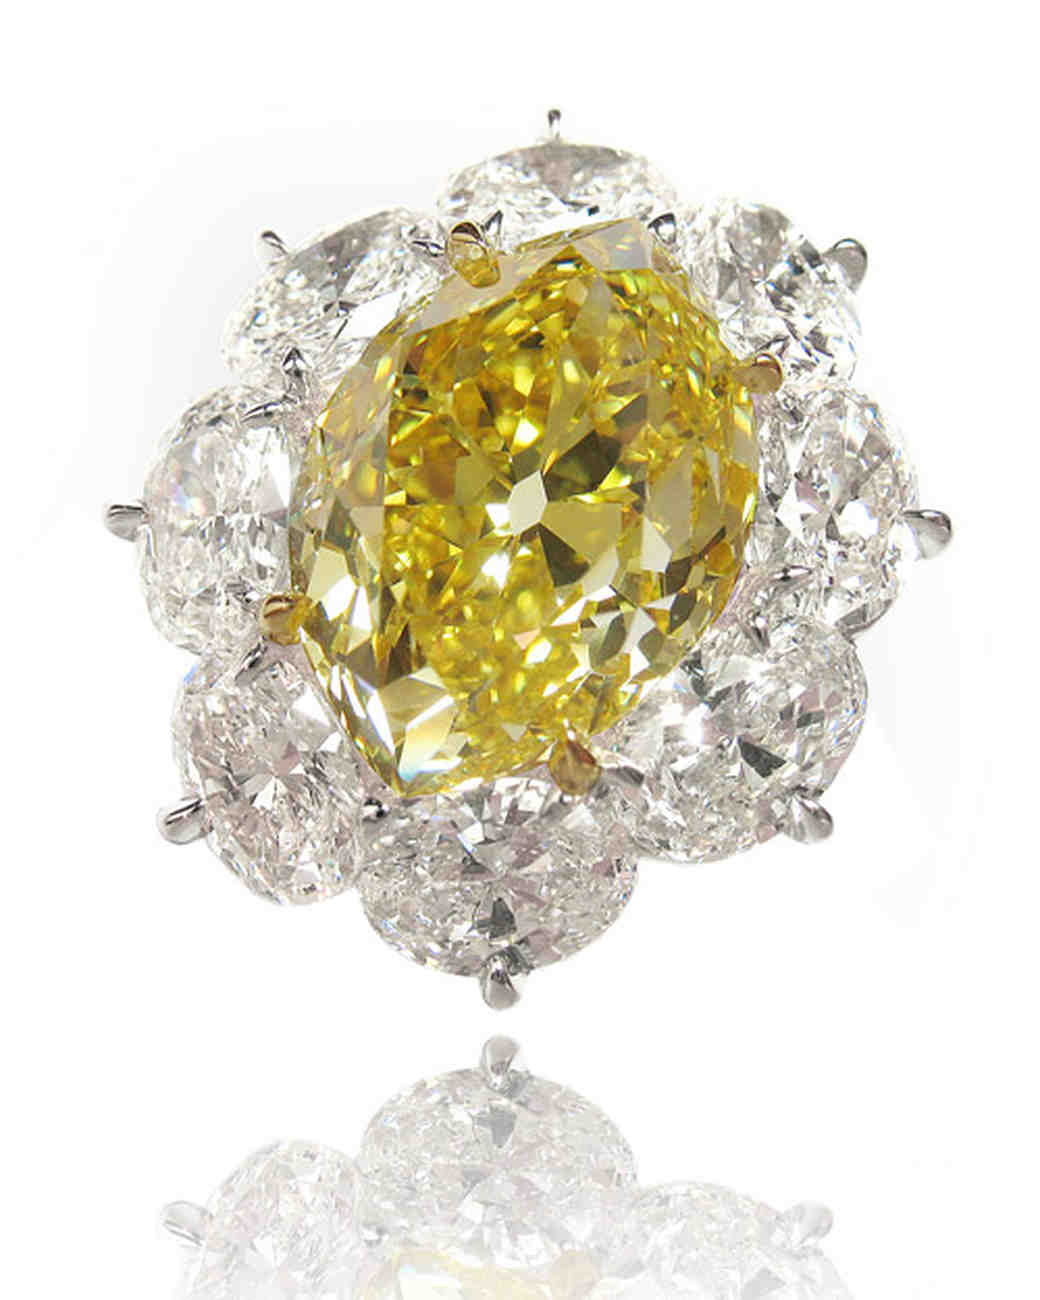 Yellow Marquise-Cut Diamond with Large White Diamond Halo